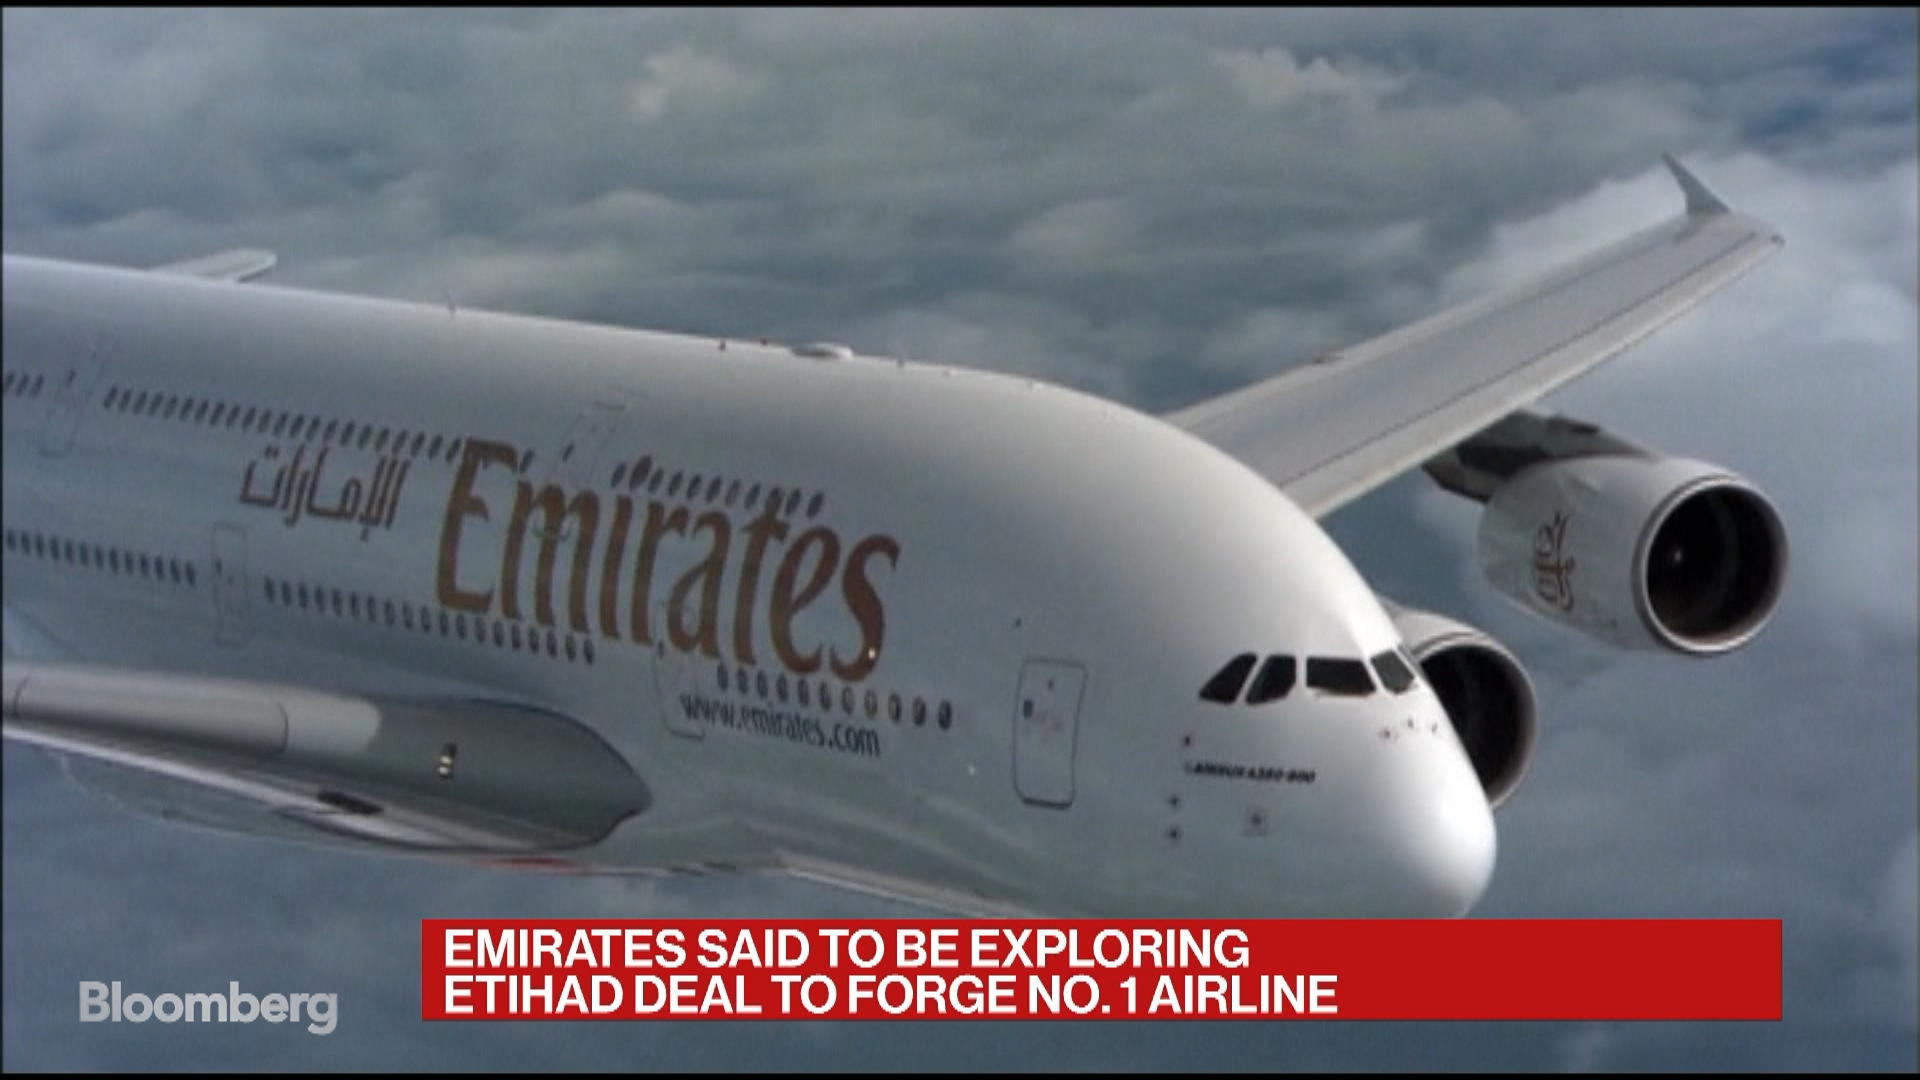 Emirates Is Said to Explore Etihad Deal to Forge Biggest